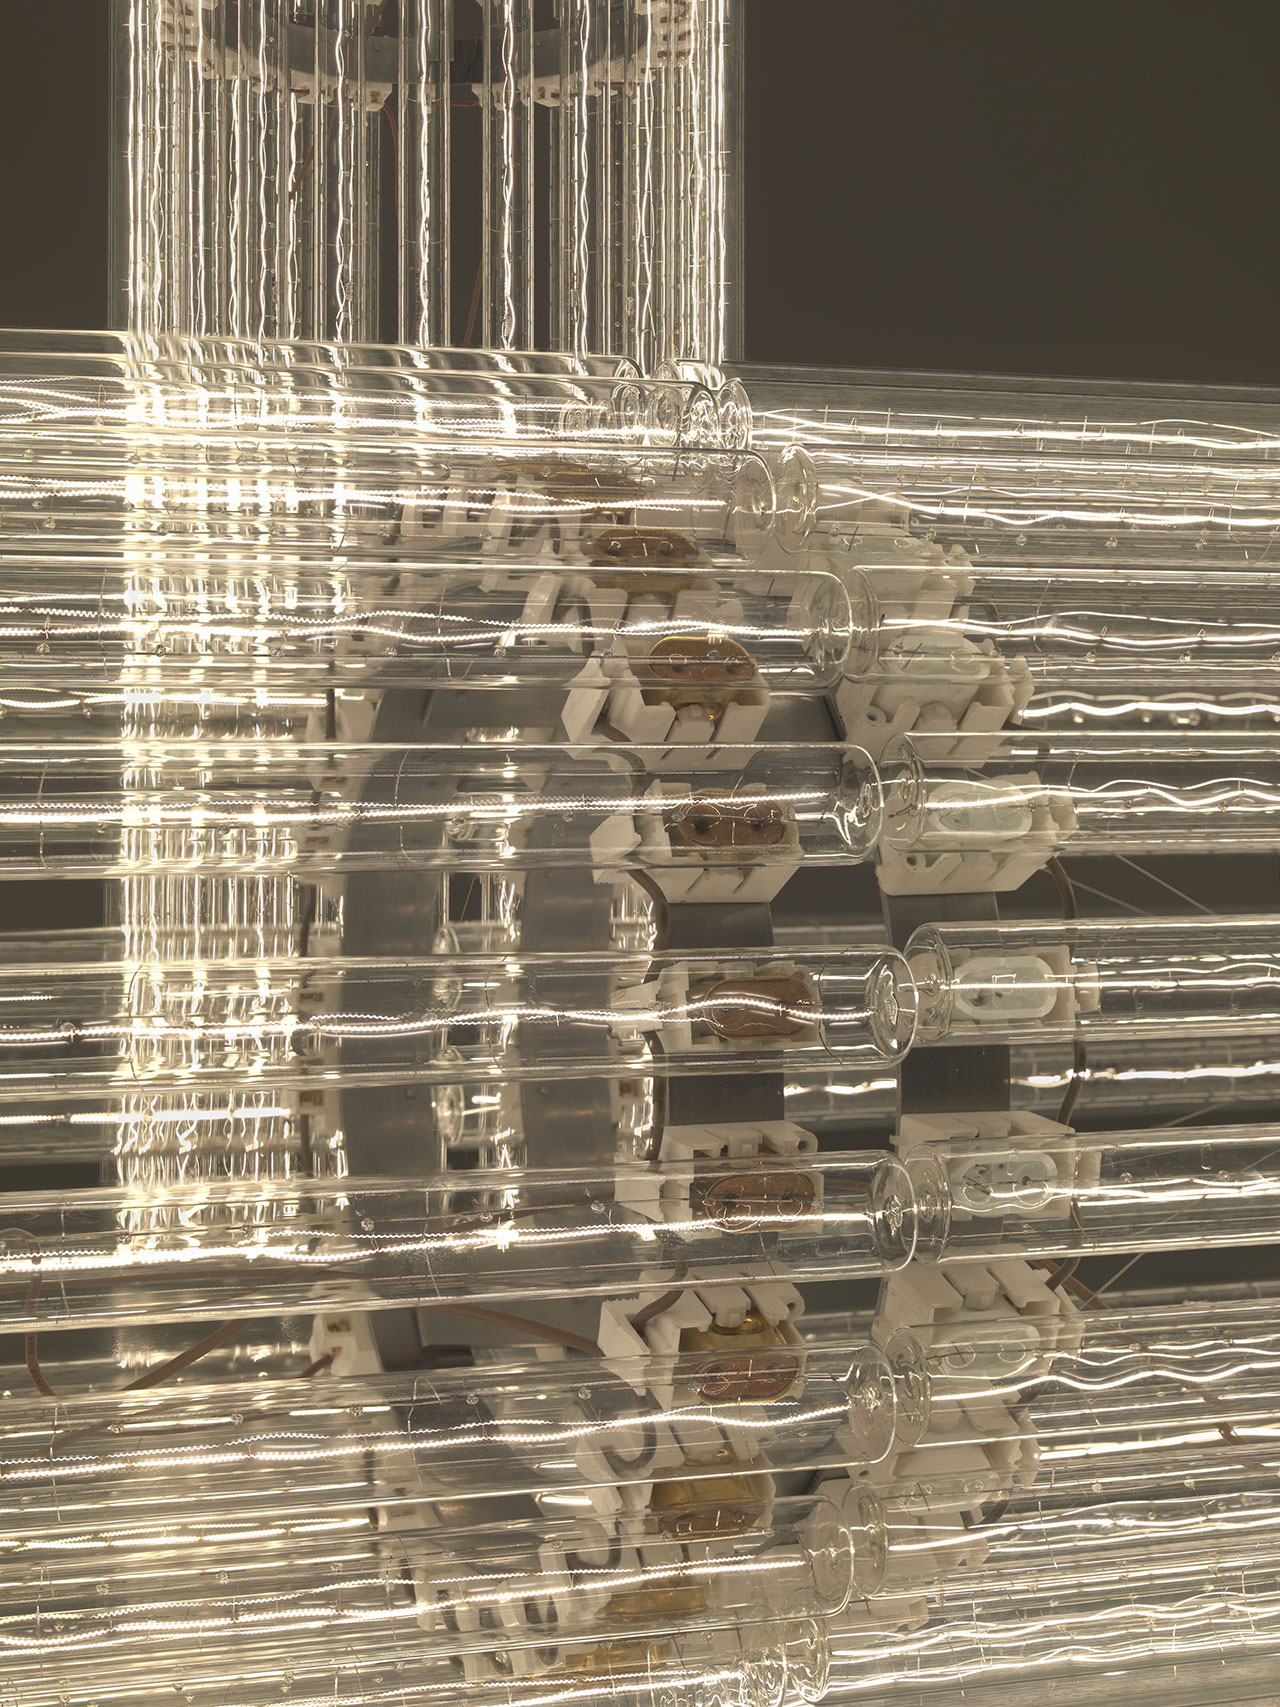 Cerith Wyn Evans, Column (Assemblages) VIII, 2010 (detail) © Cerith Wyn Evans. Courtesy White Cube. Photo: Todd-White Art Photography.